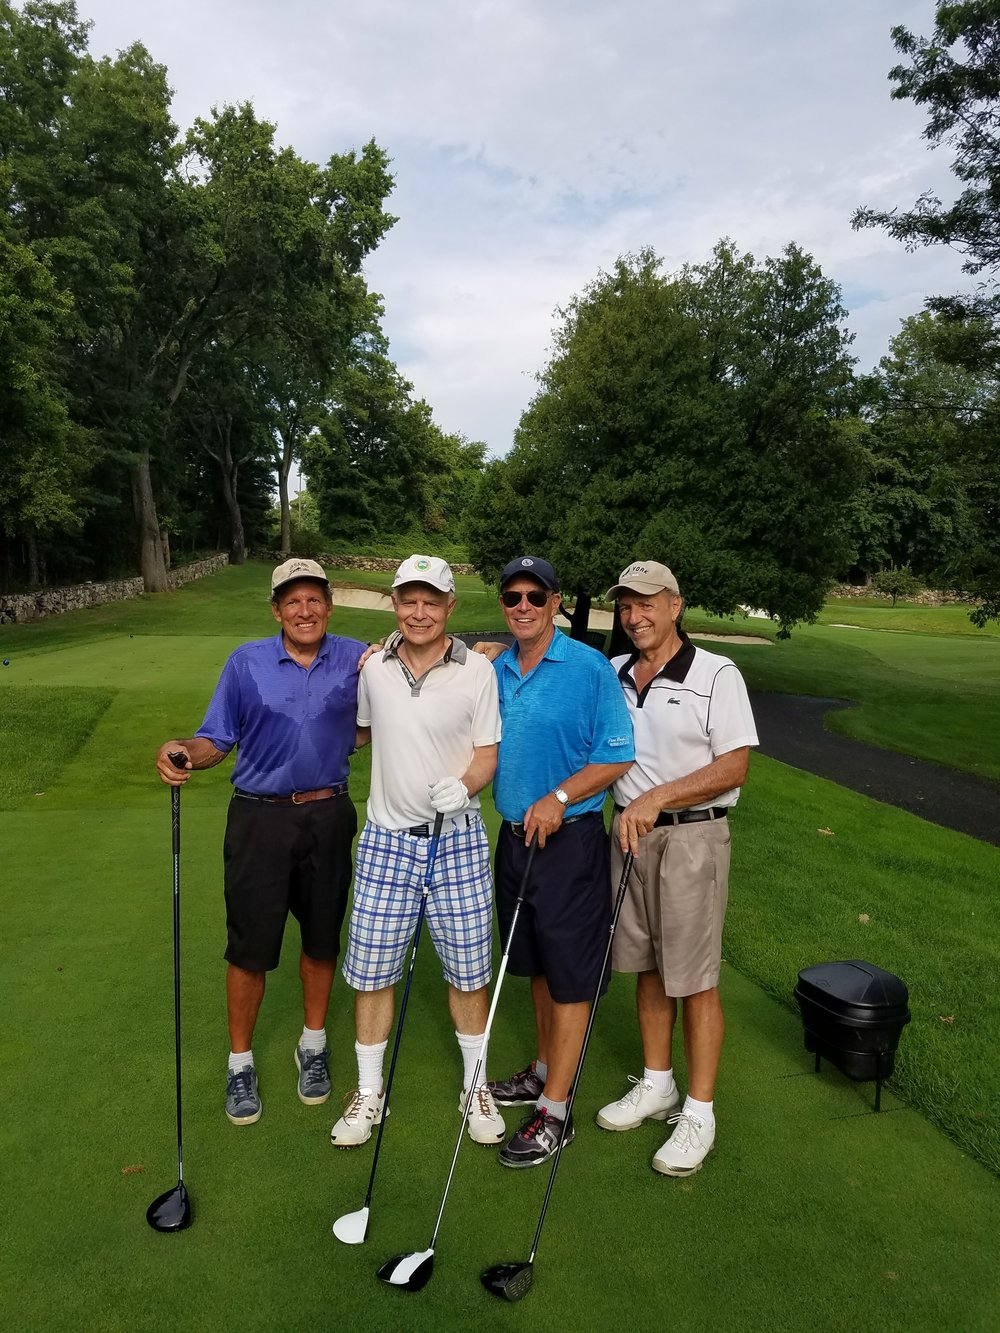 Steve Bilsky, Mark Kingdon, Alan Biren, Stuart Russo: the golfers